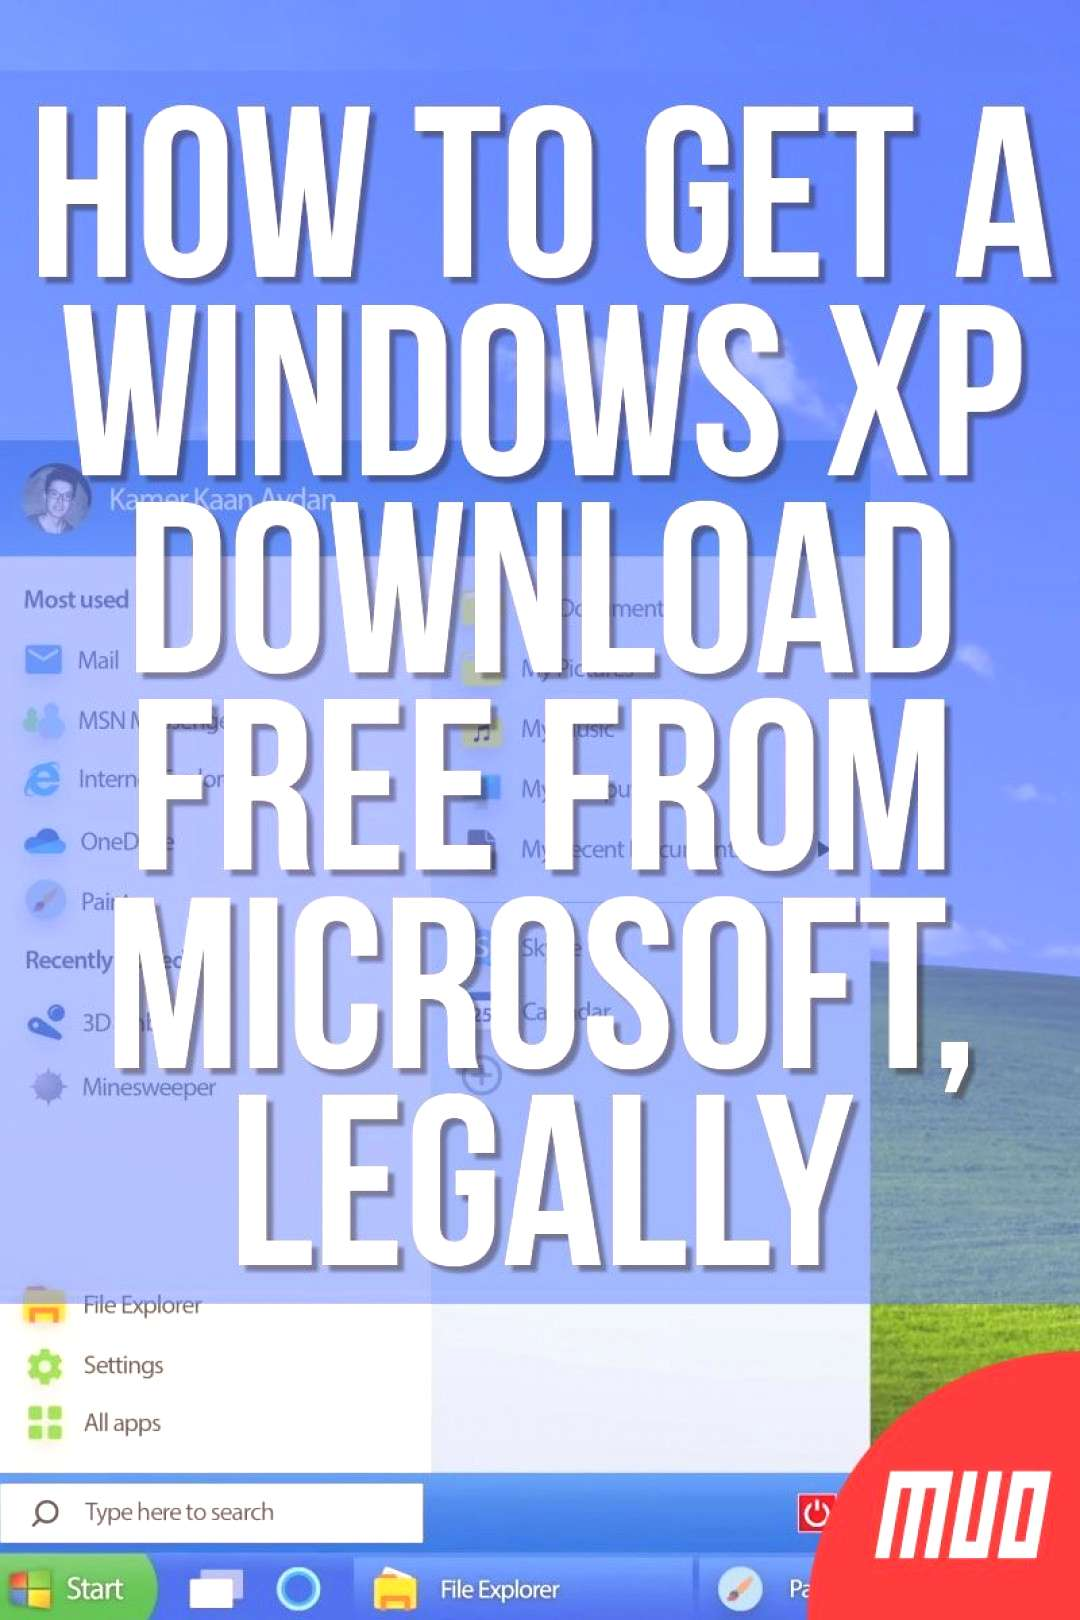 — Technology, Simplified — Want a free Windows XP downloaded from Microsoft? It's possible